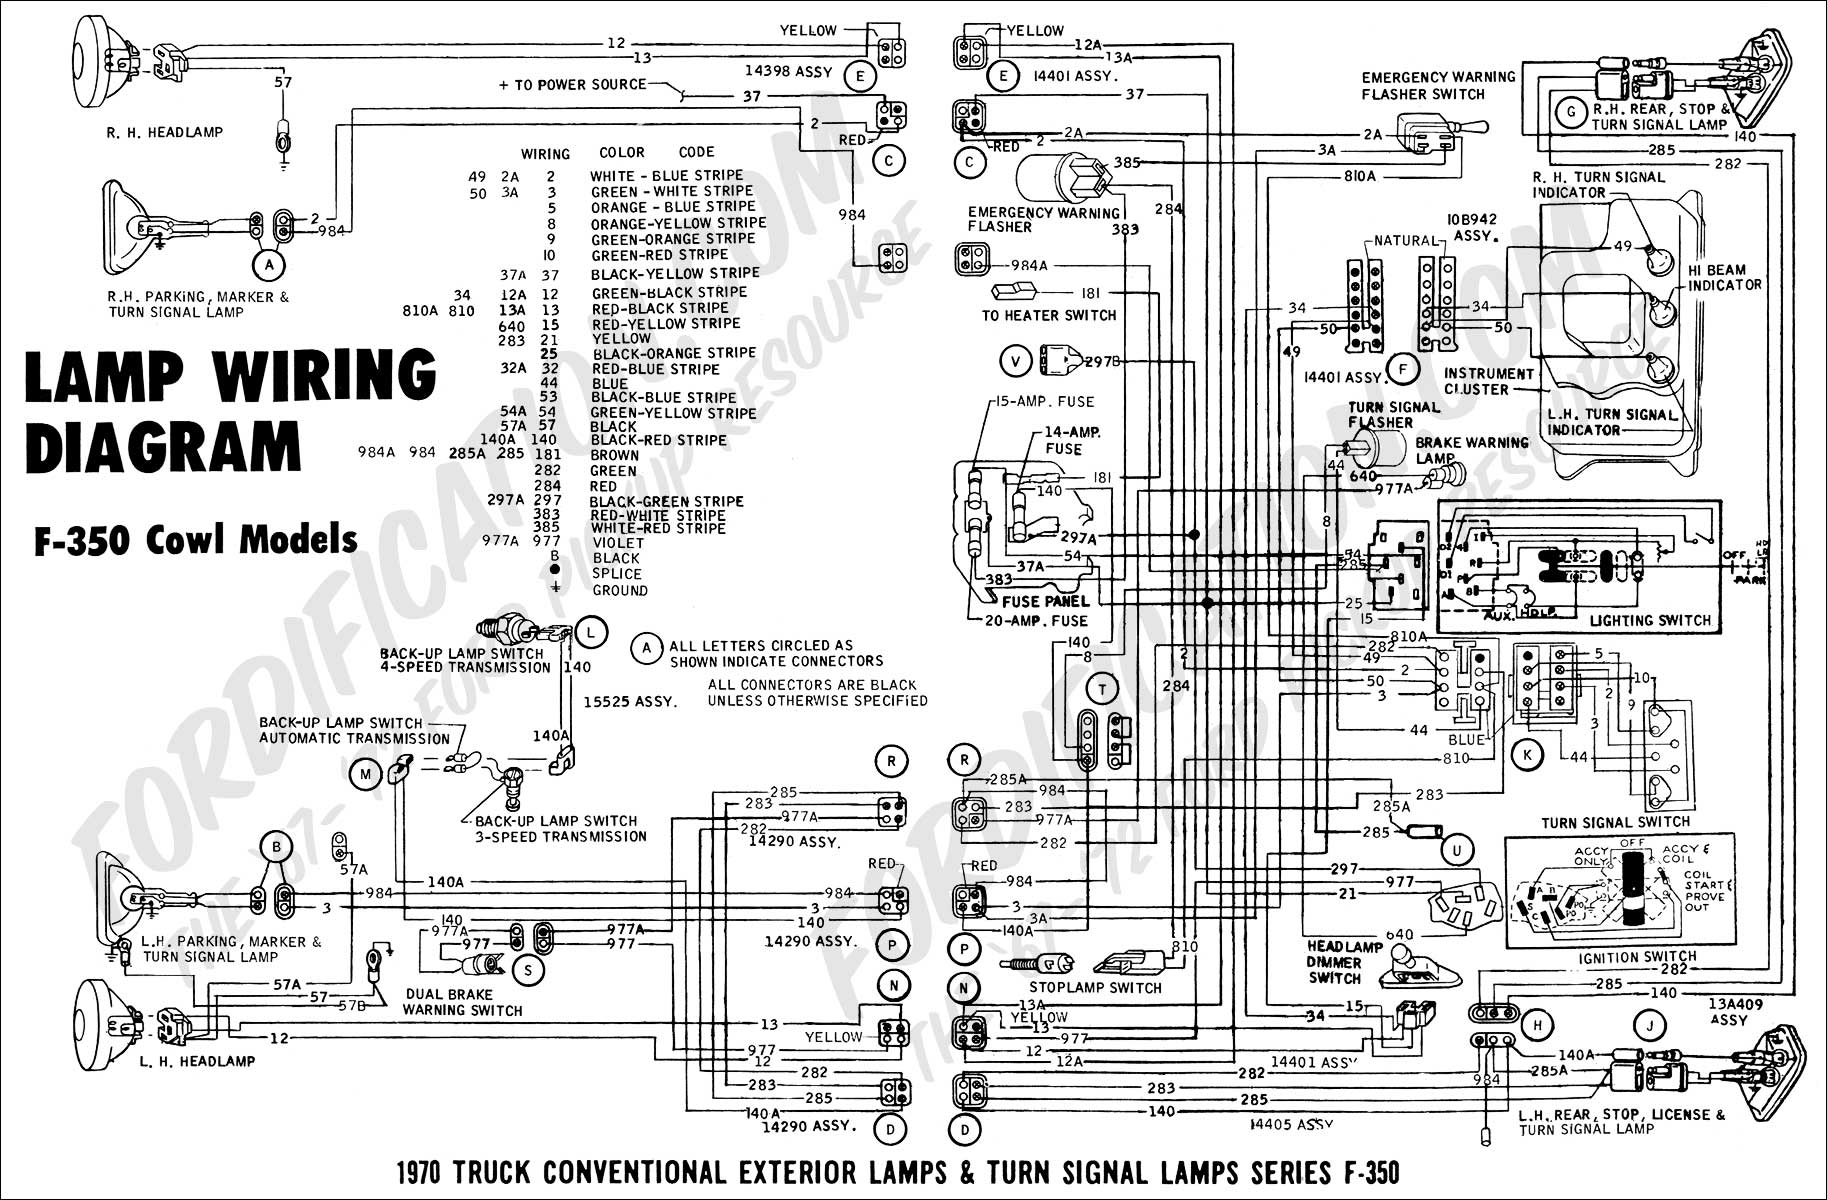 1999 ford f250 super duty wiring diagram 2004 kia spectra stereo dome light switch autos post